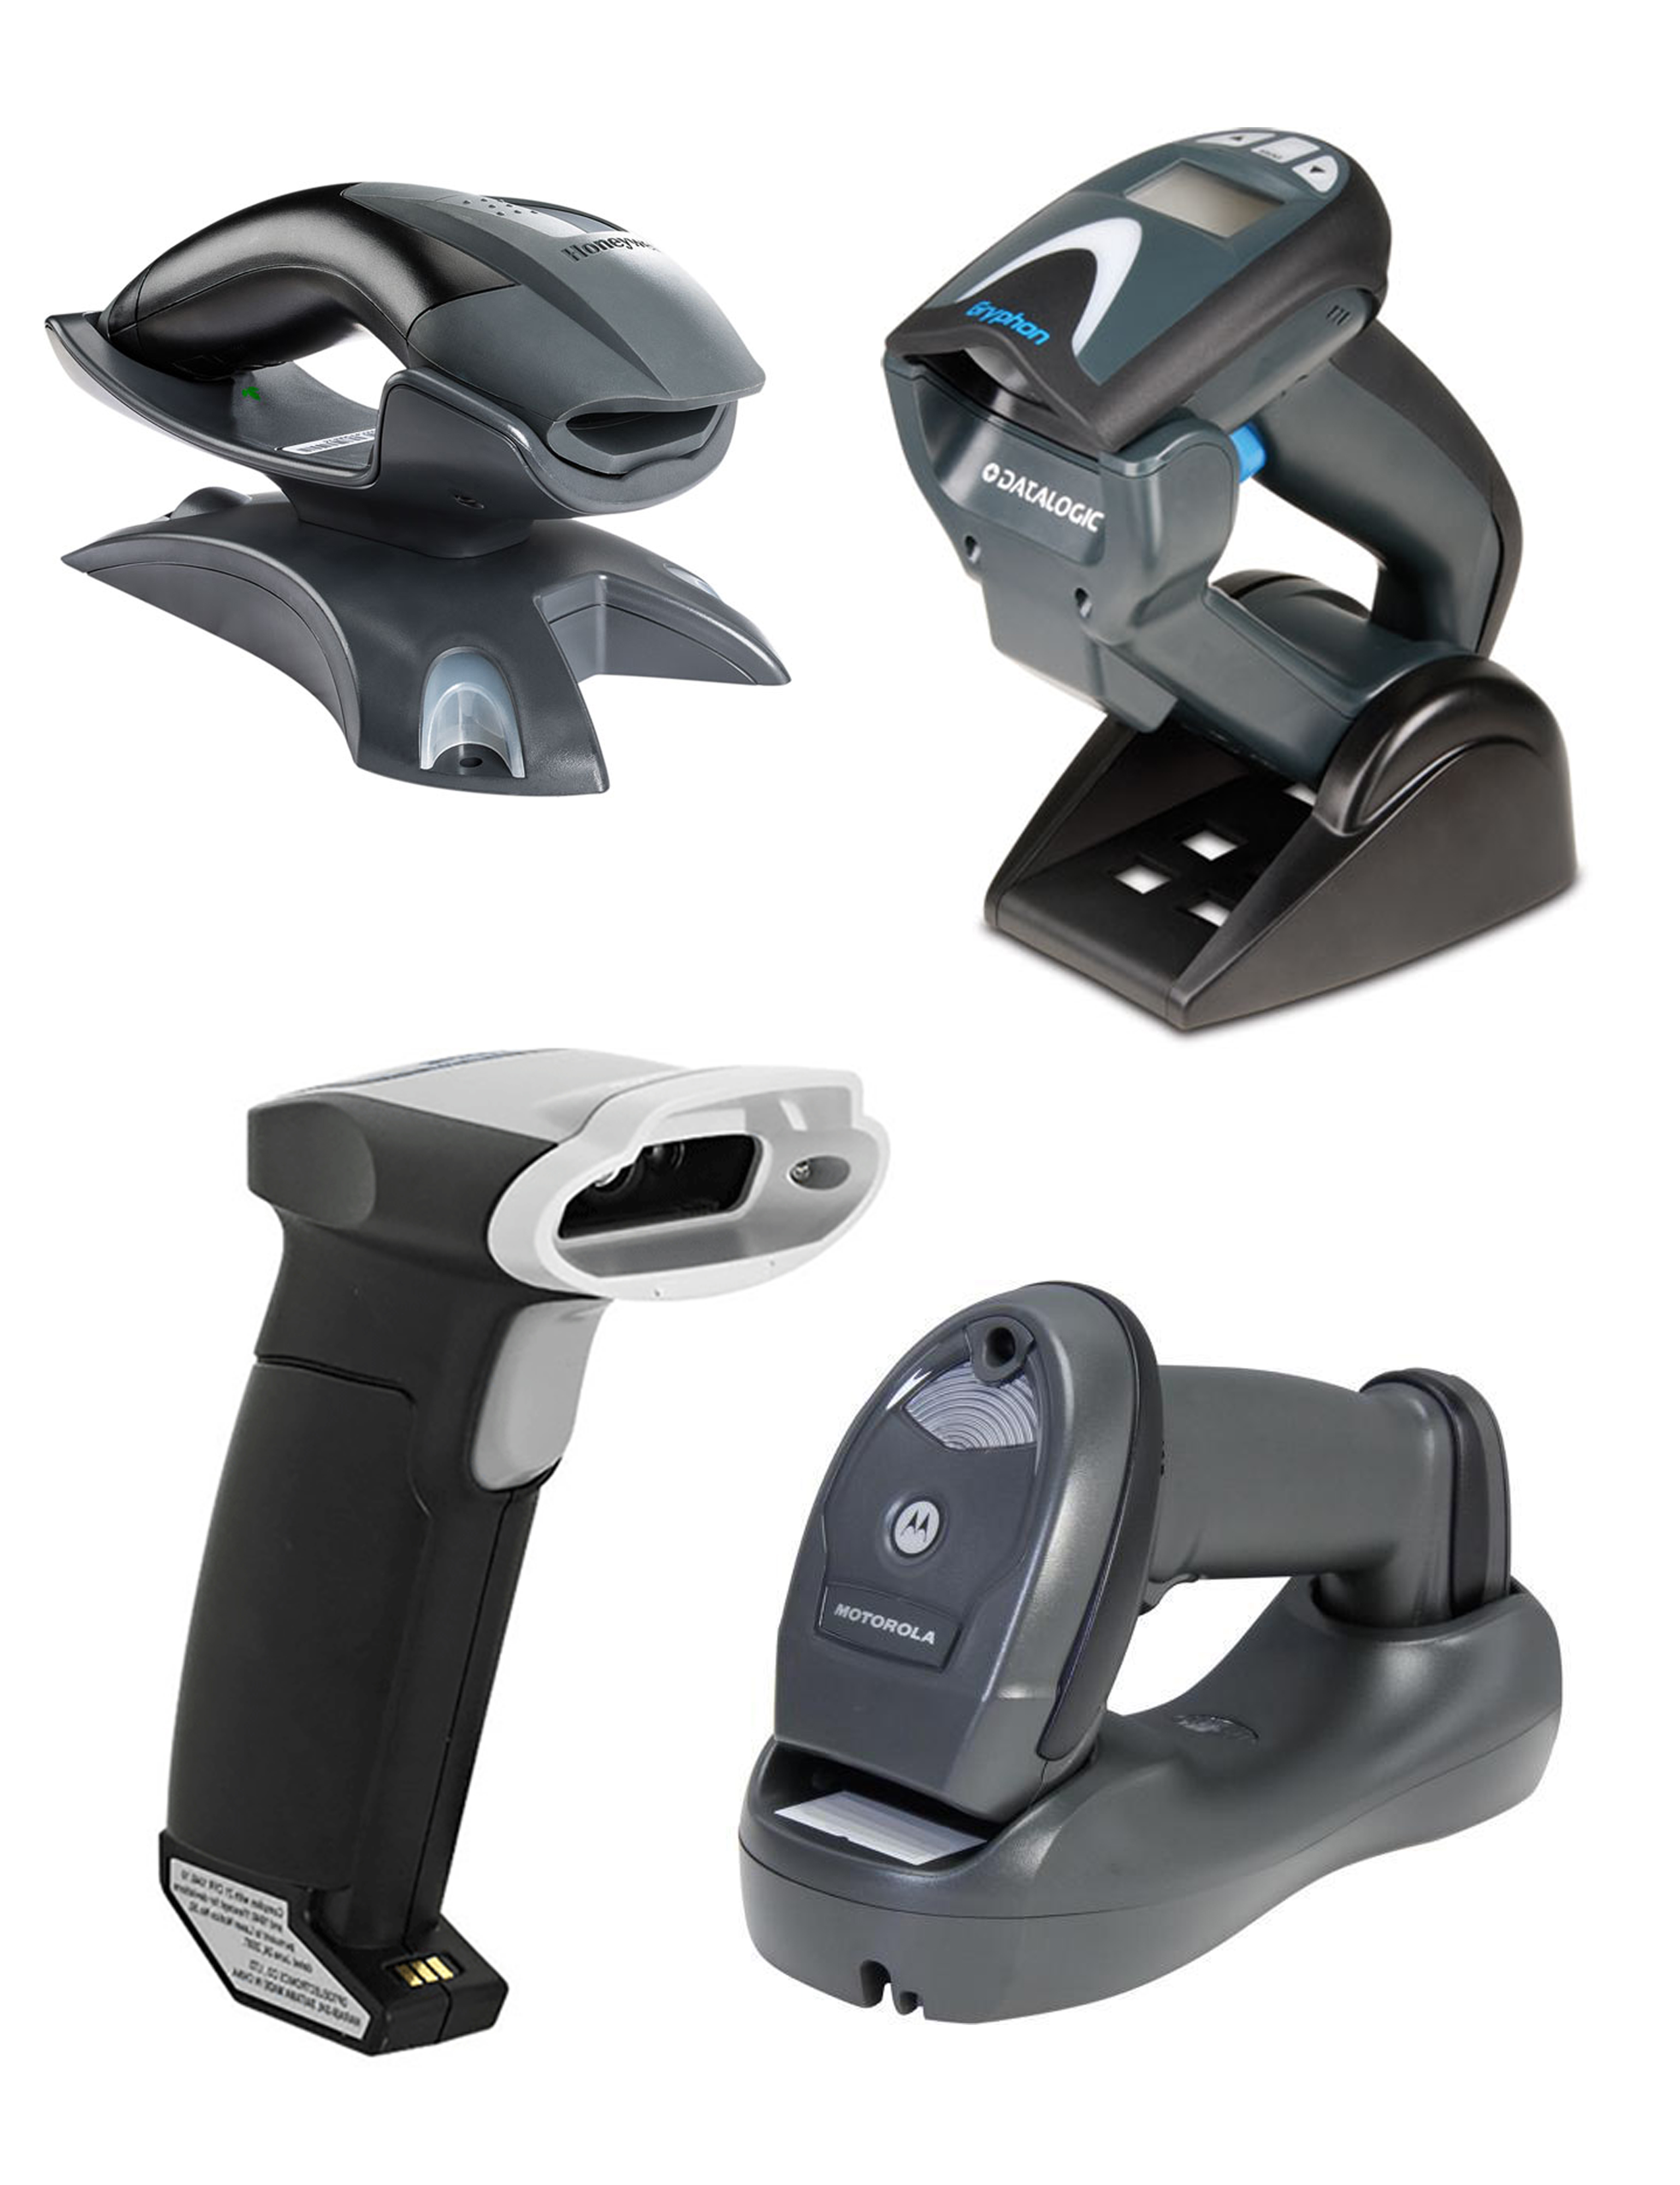 Wireless Handheld Barcode Scanners